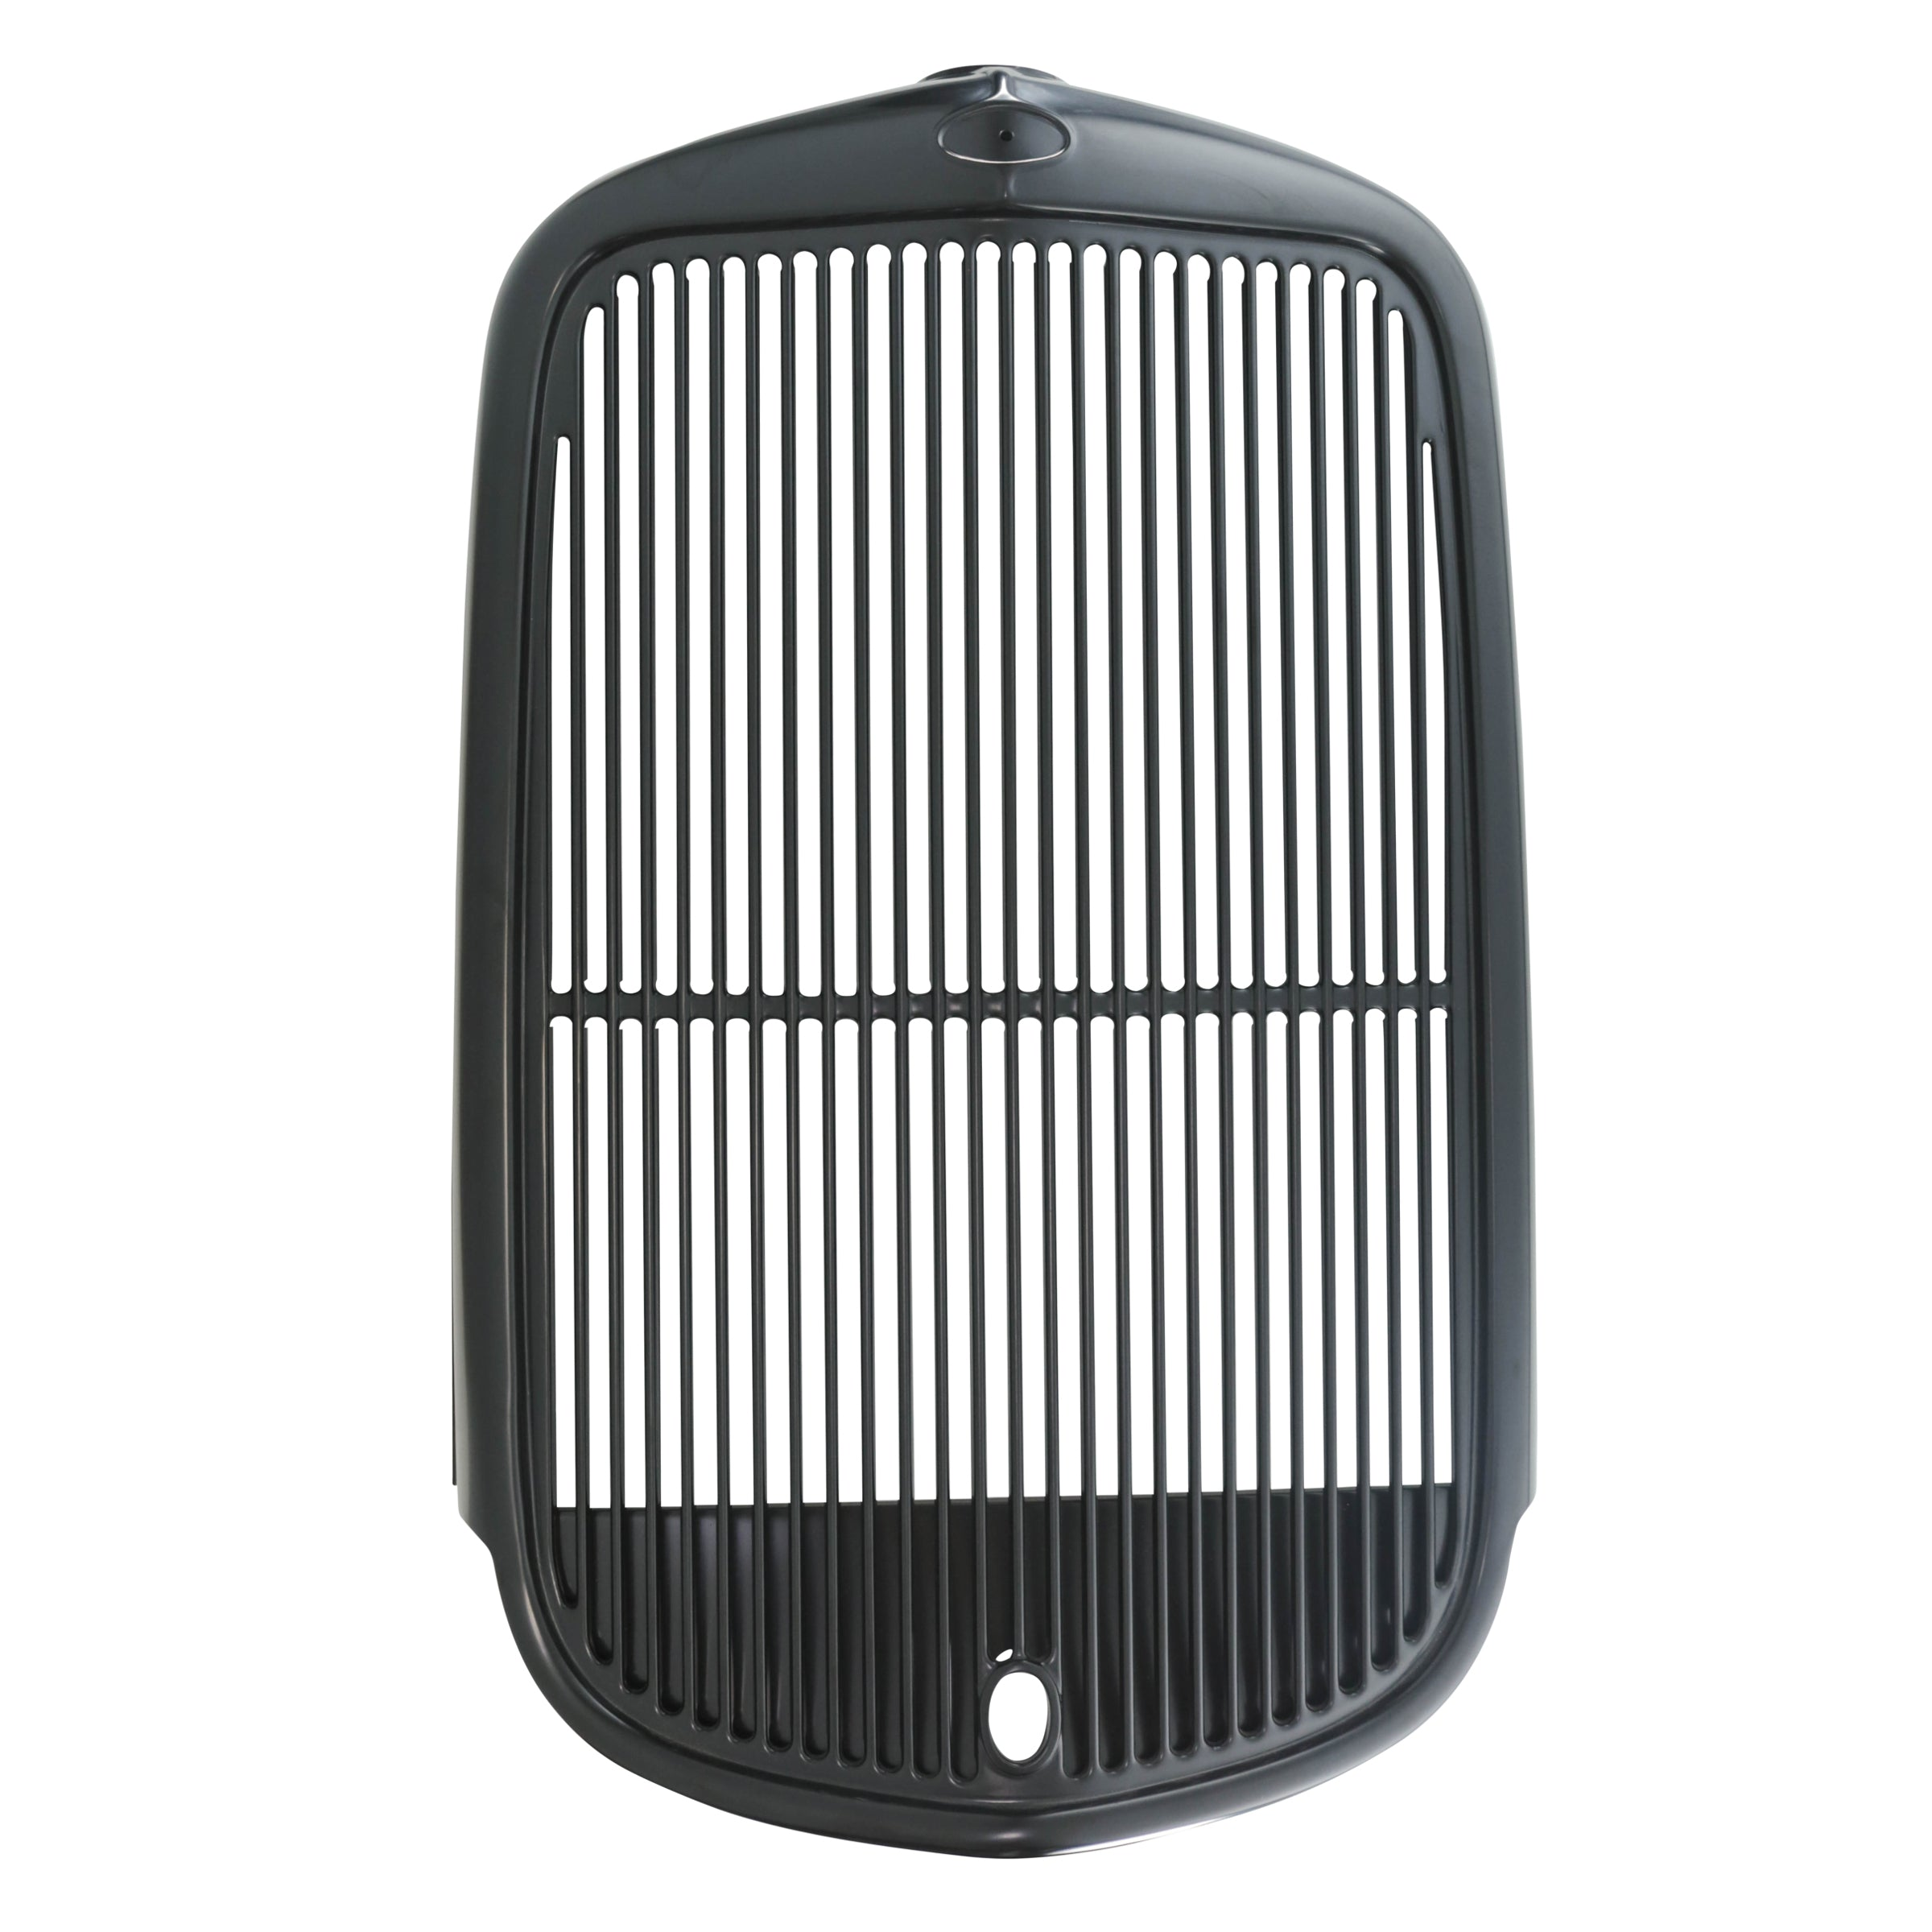 Radiator Grille Shell (Black) • 1932 Ford Pickup & Truck